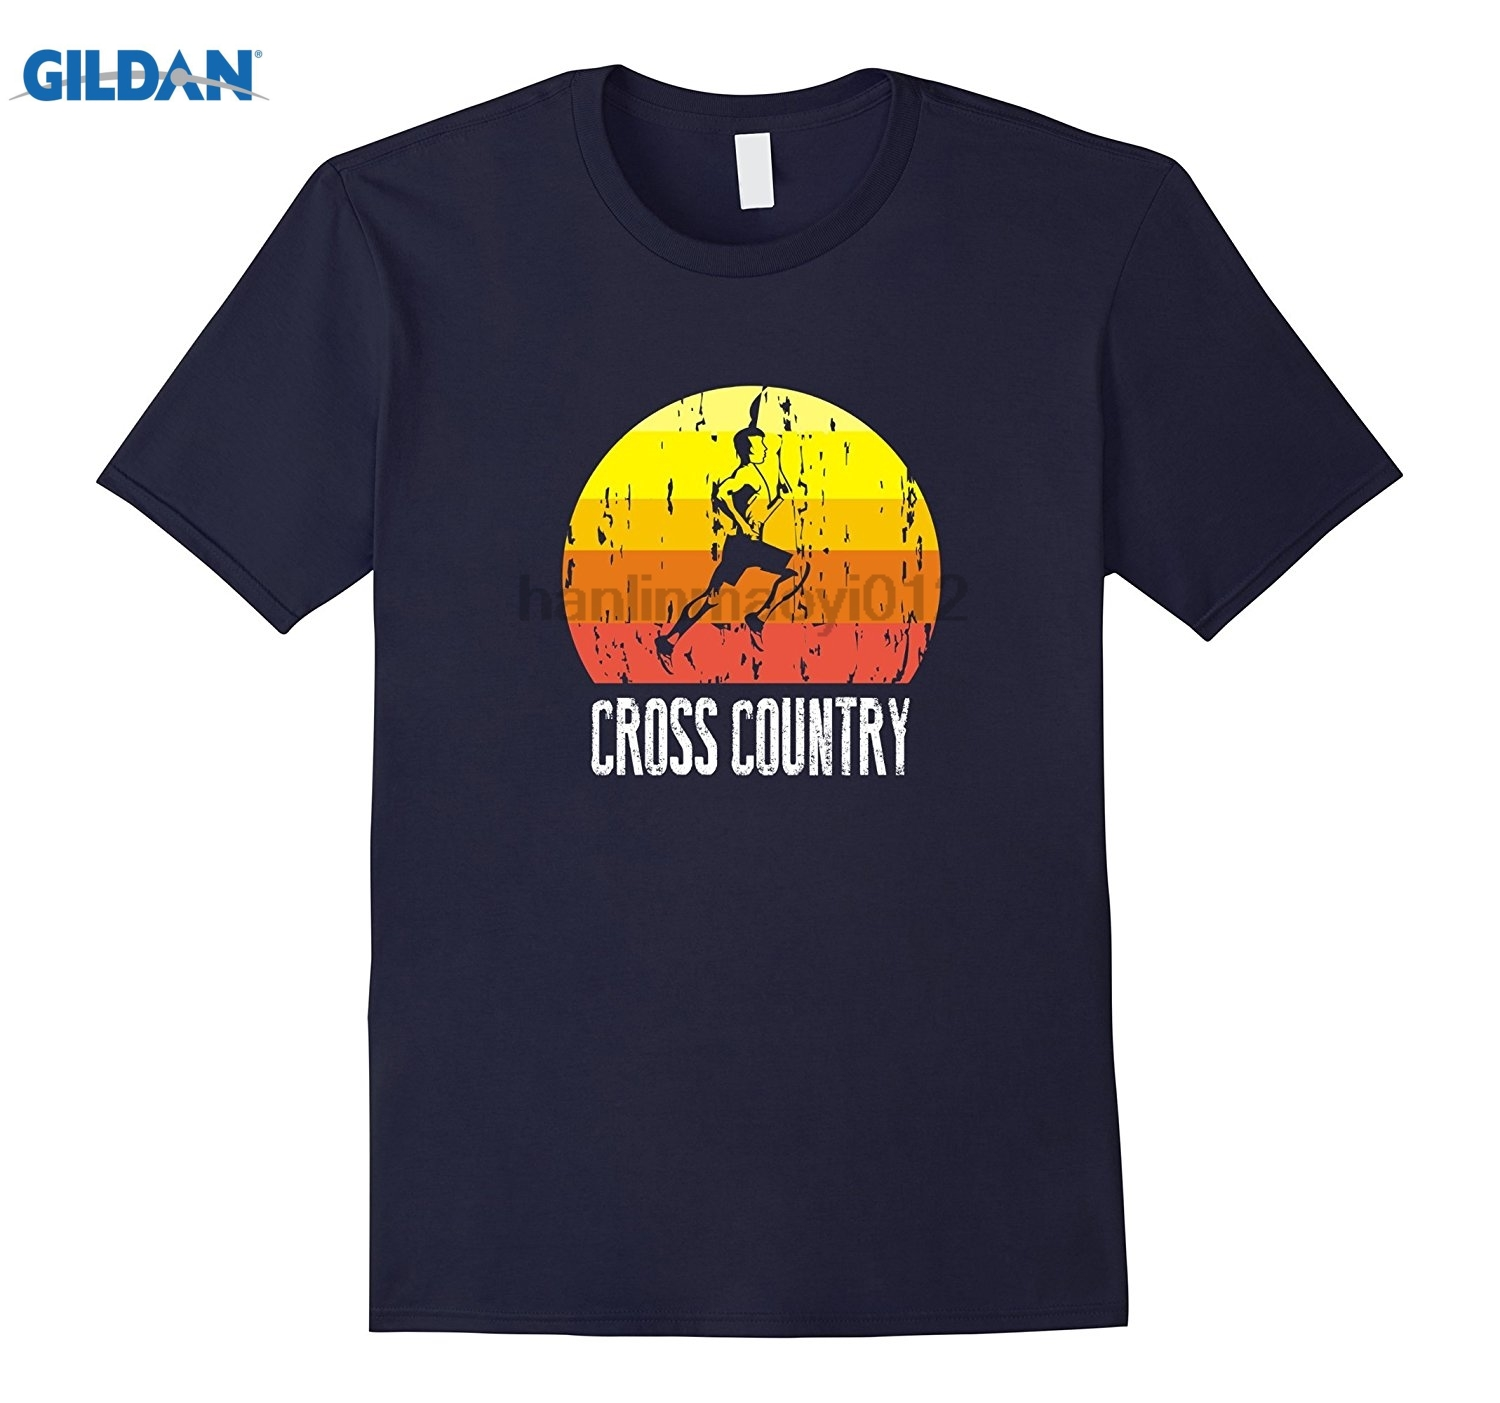 GILDAN Retro Distressed Cross Country T-Shirt For Runners sunglasses women T-shirt ...